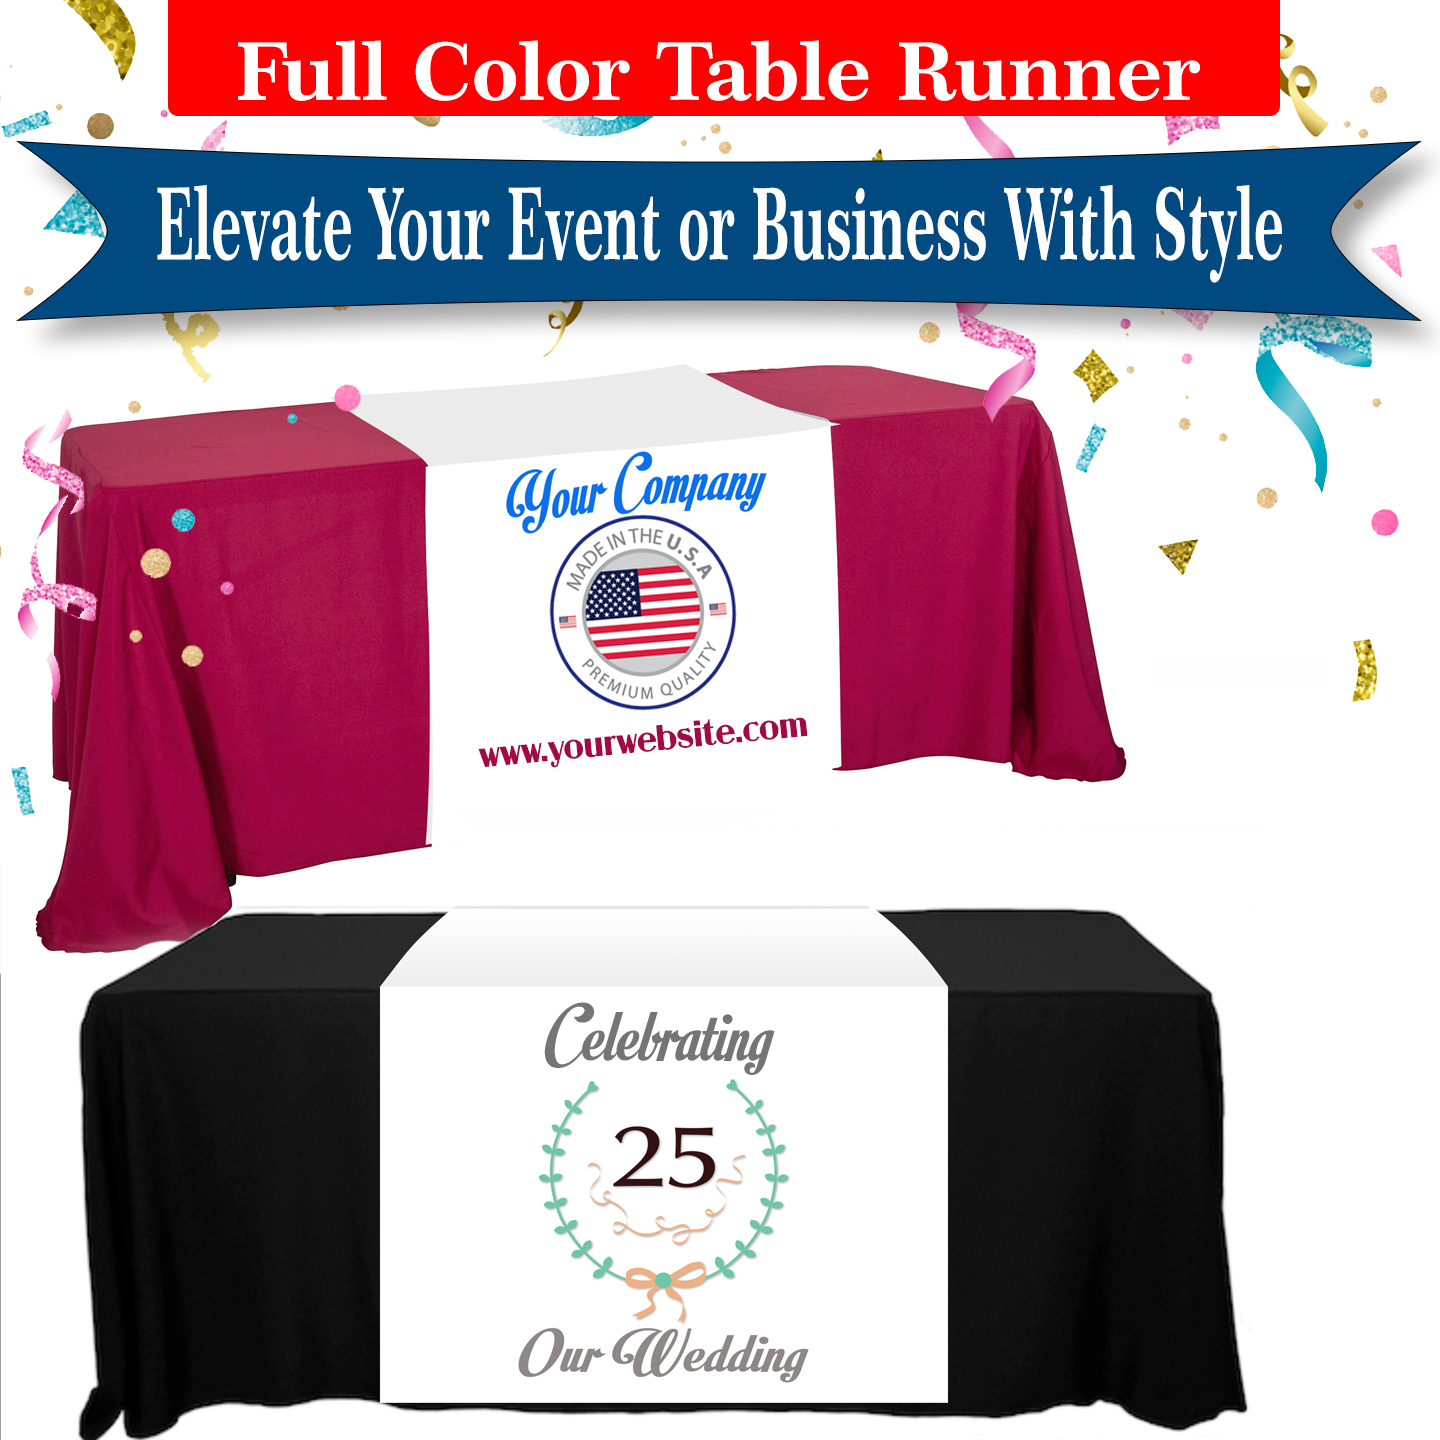 Table runner promotional marketing tremendous designs updated new final